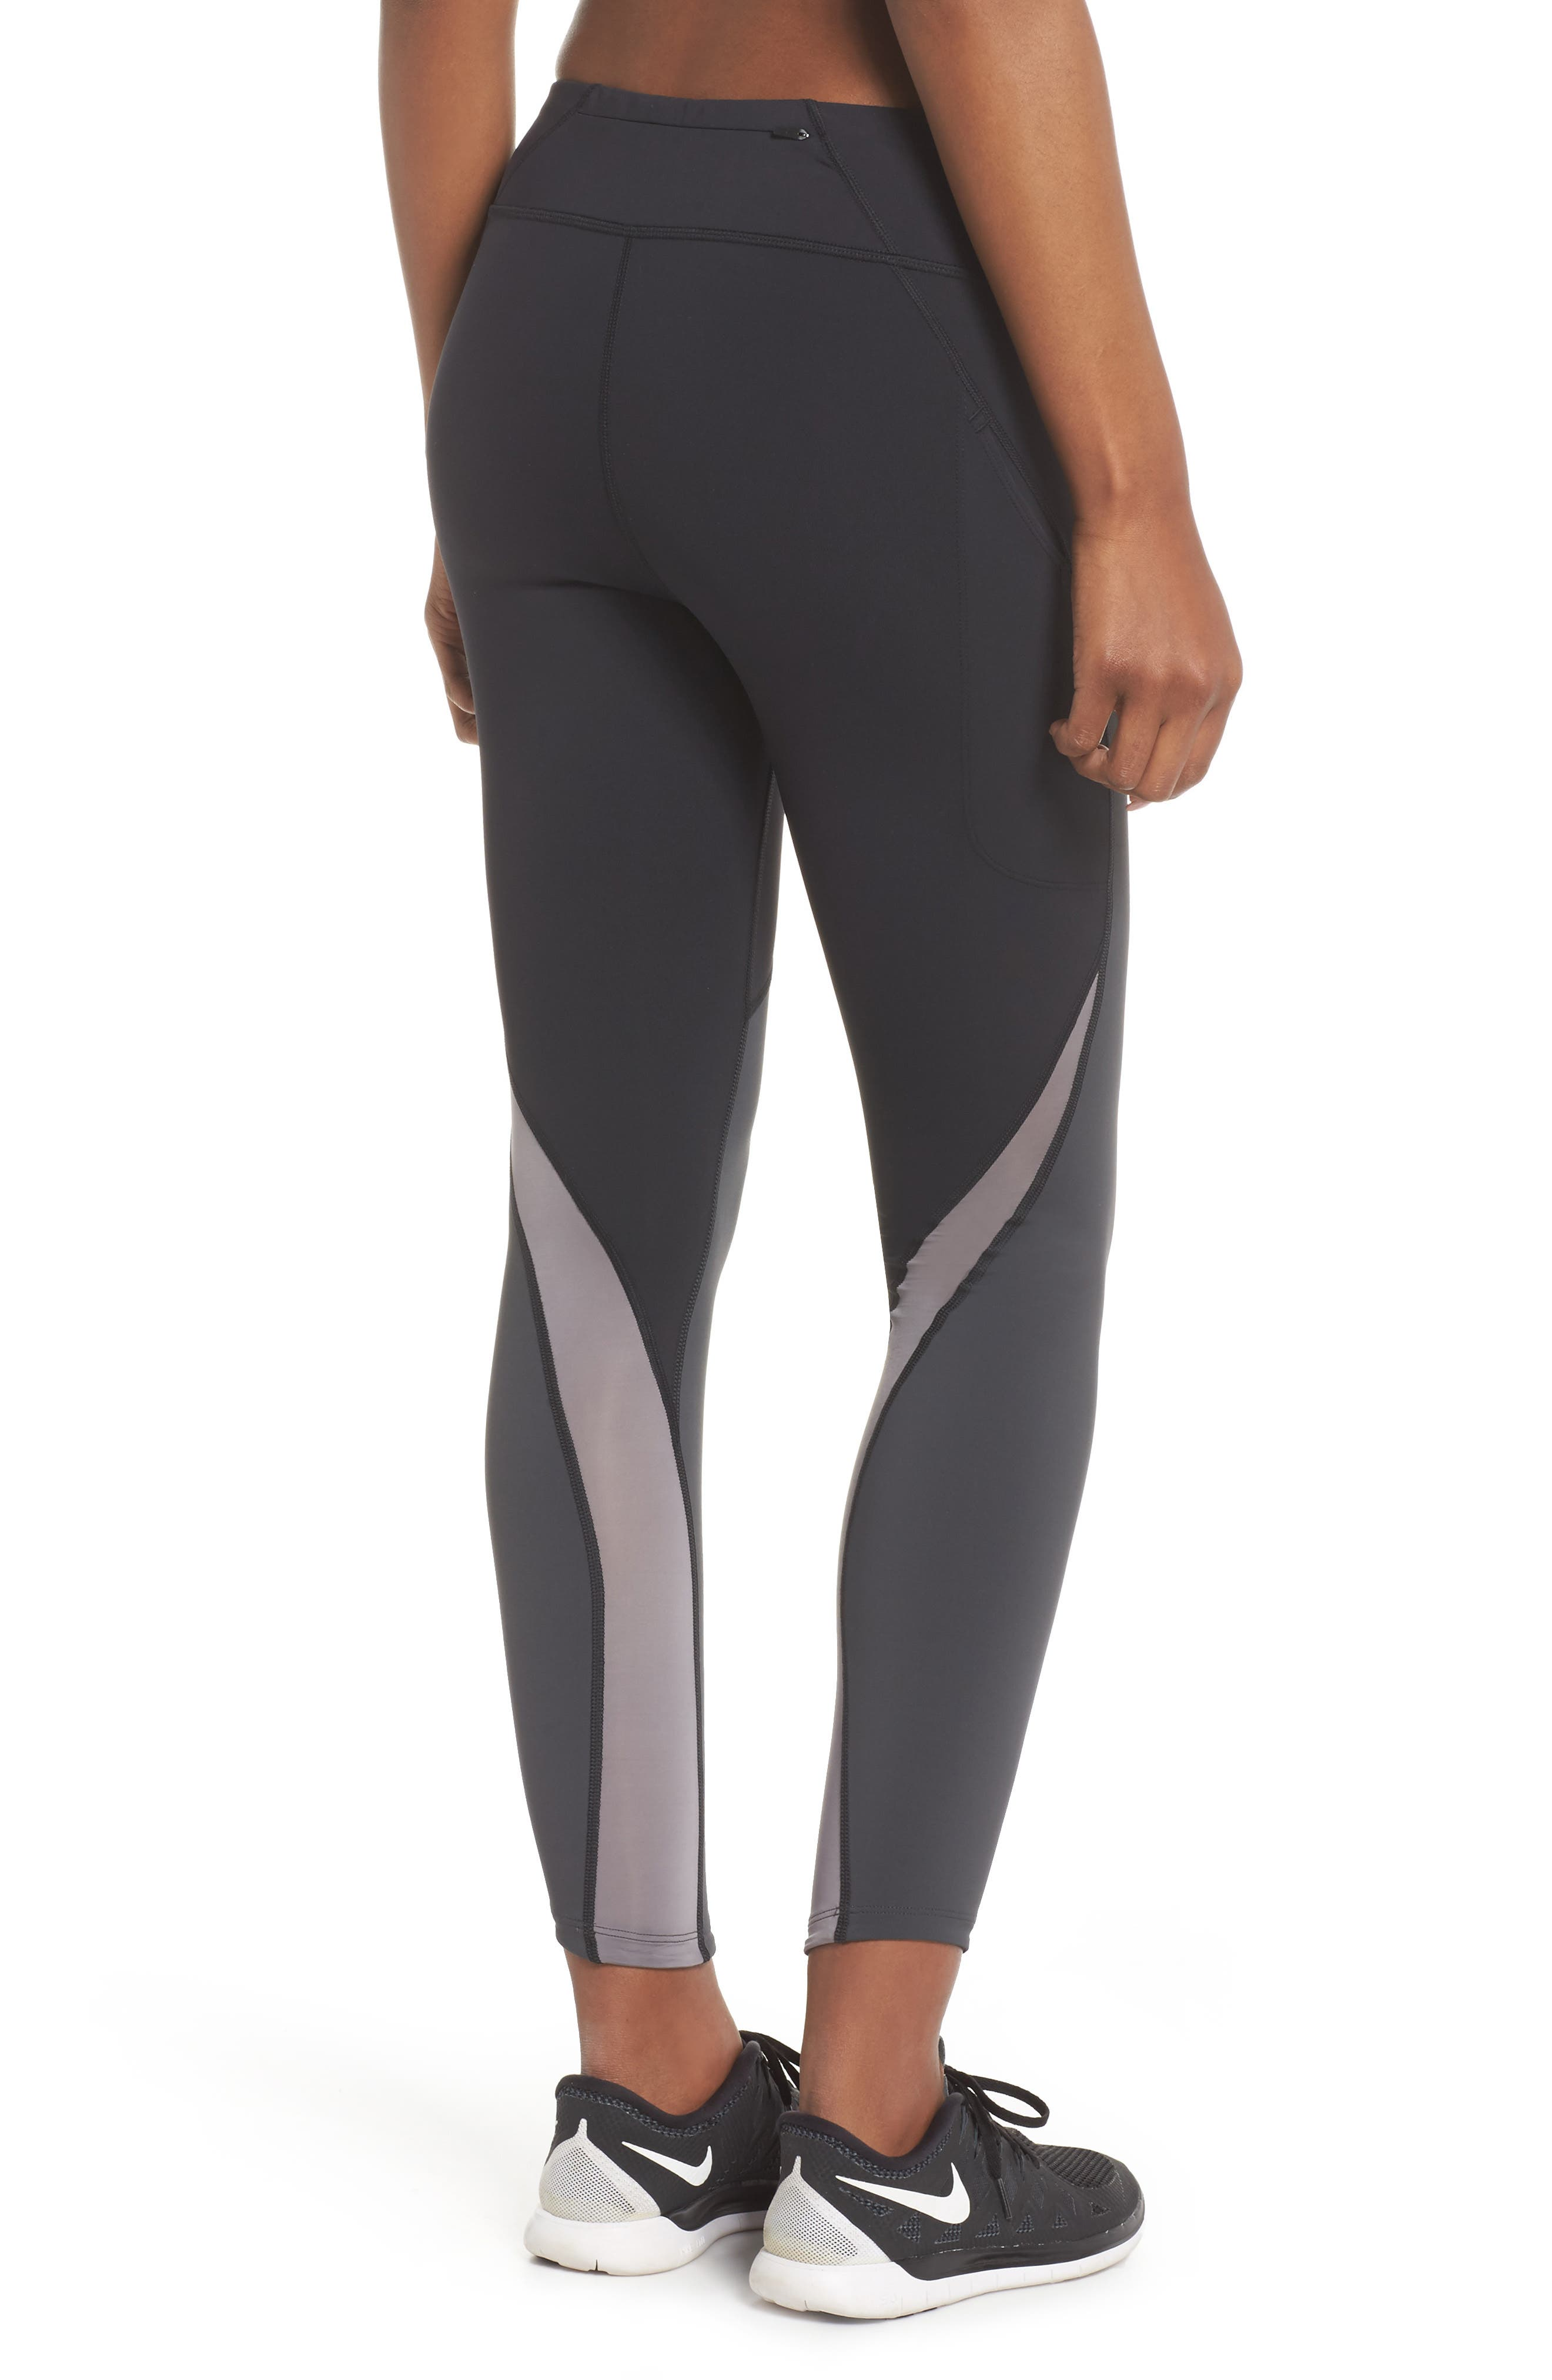 Power Epic Lux Colorblock Running Tights,                             Alternate thumbnail 2, color,                             Black/ Anthracite/ White